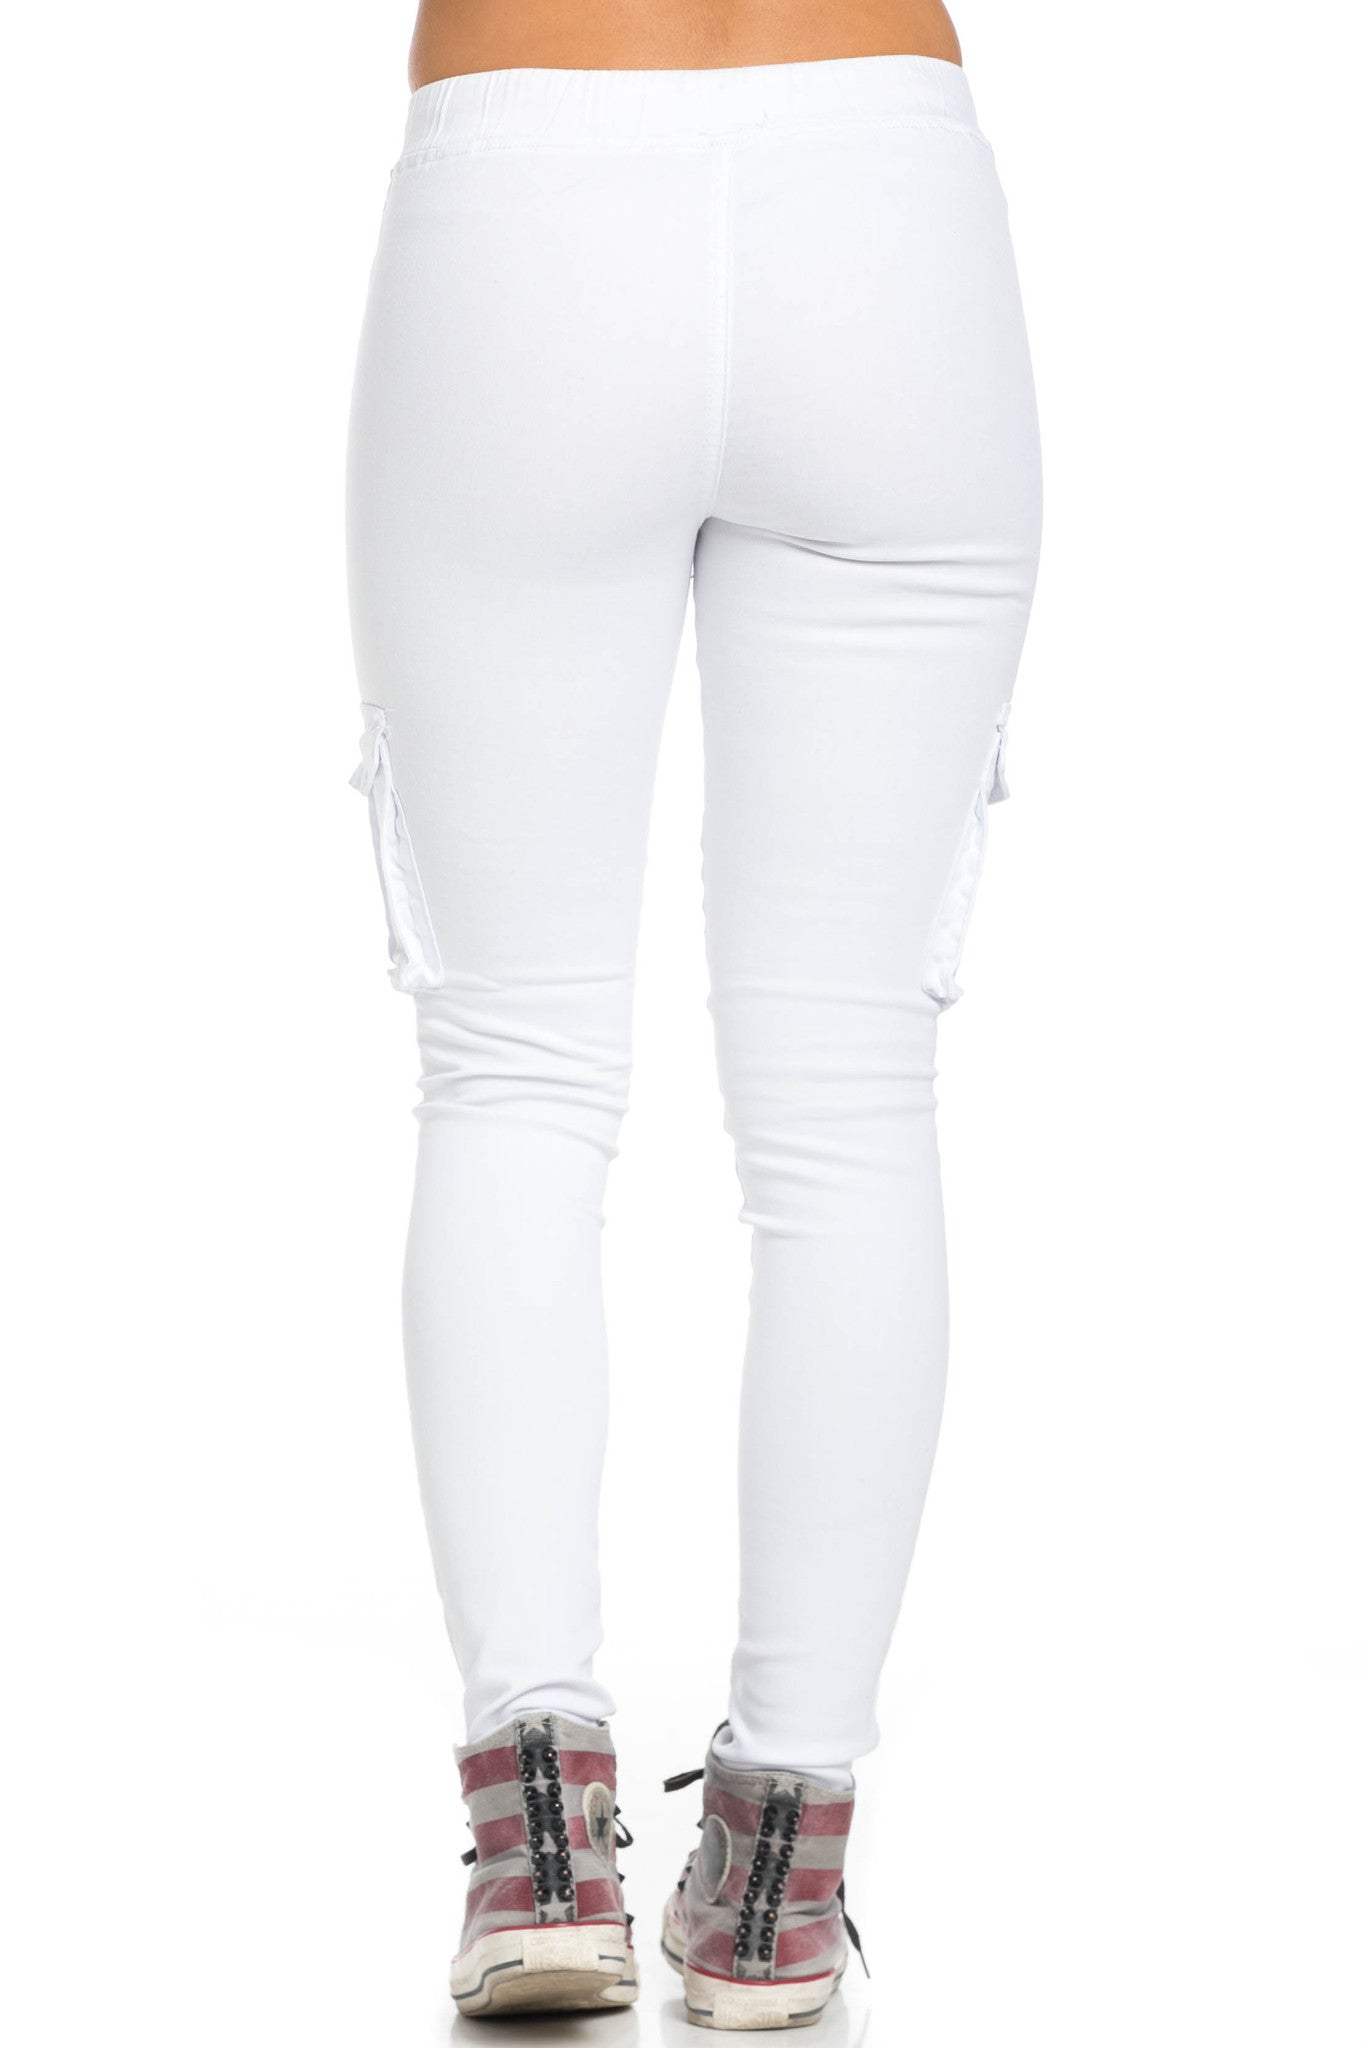 Mid Rise Skinny White Cargo Pants - Pants - My Yuccie - 4